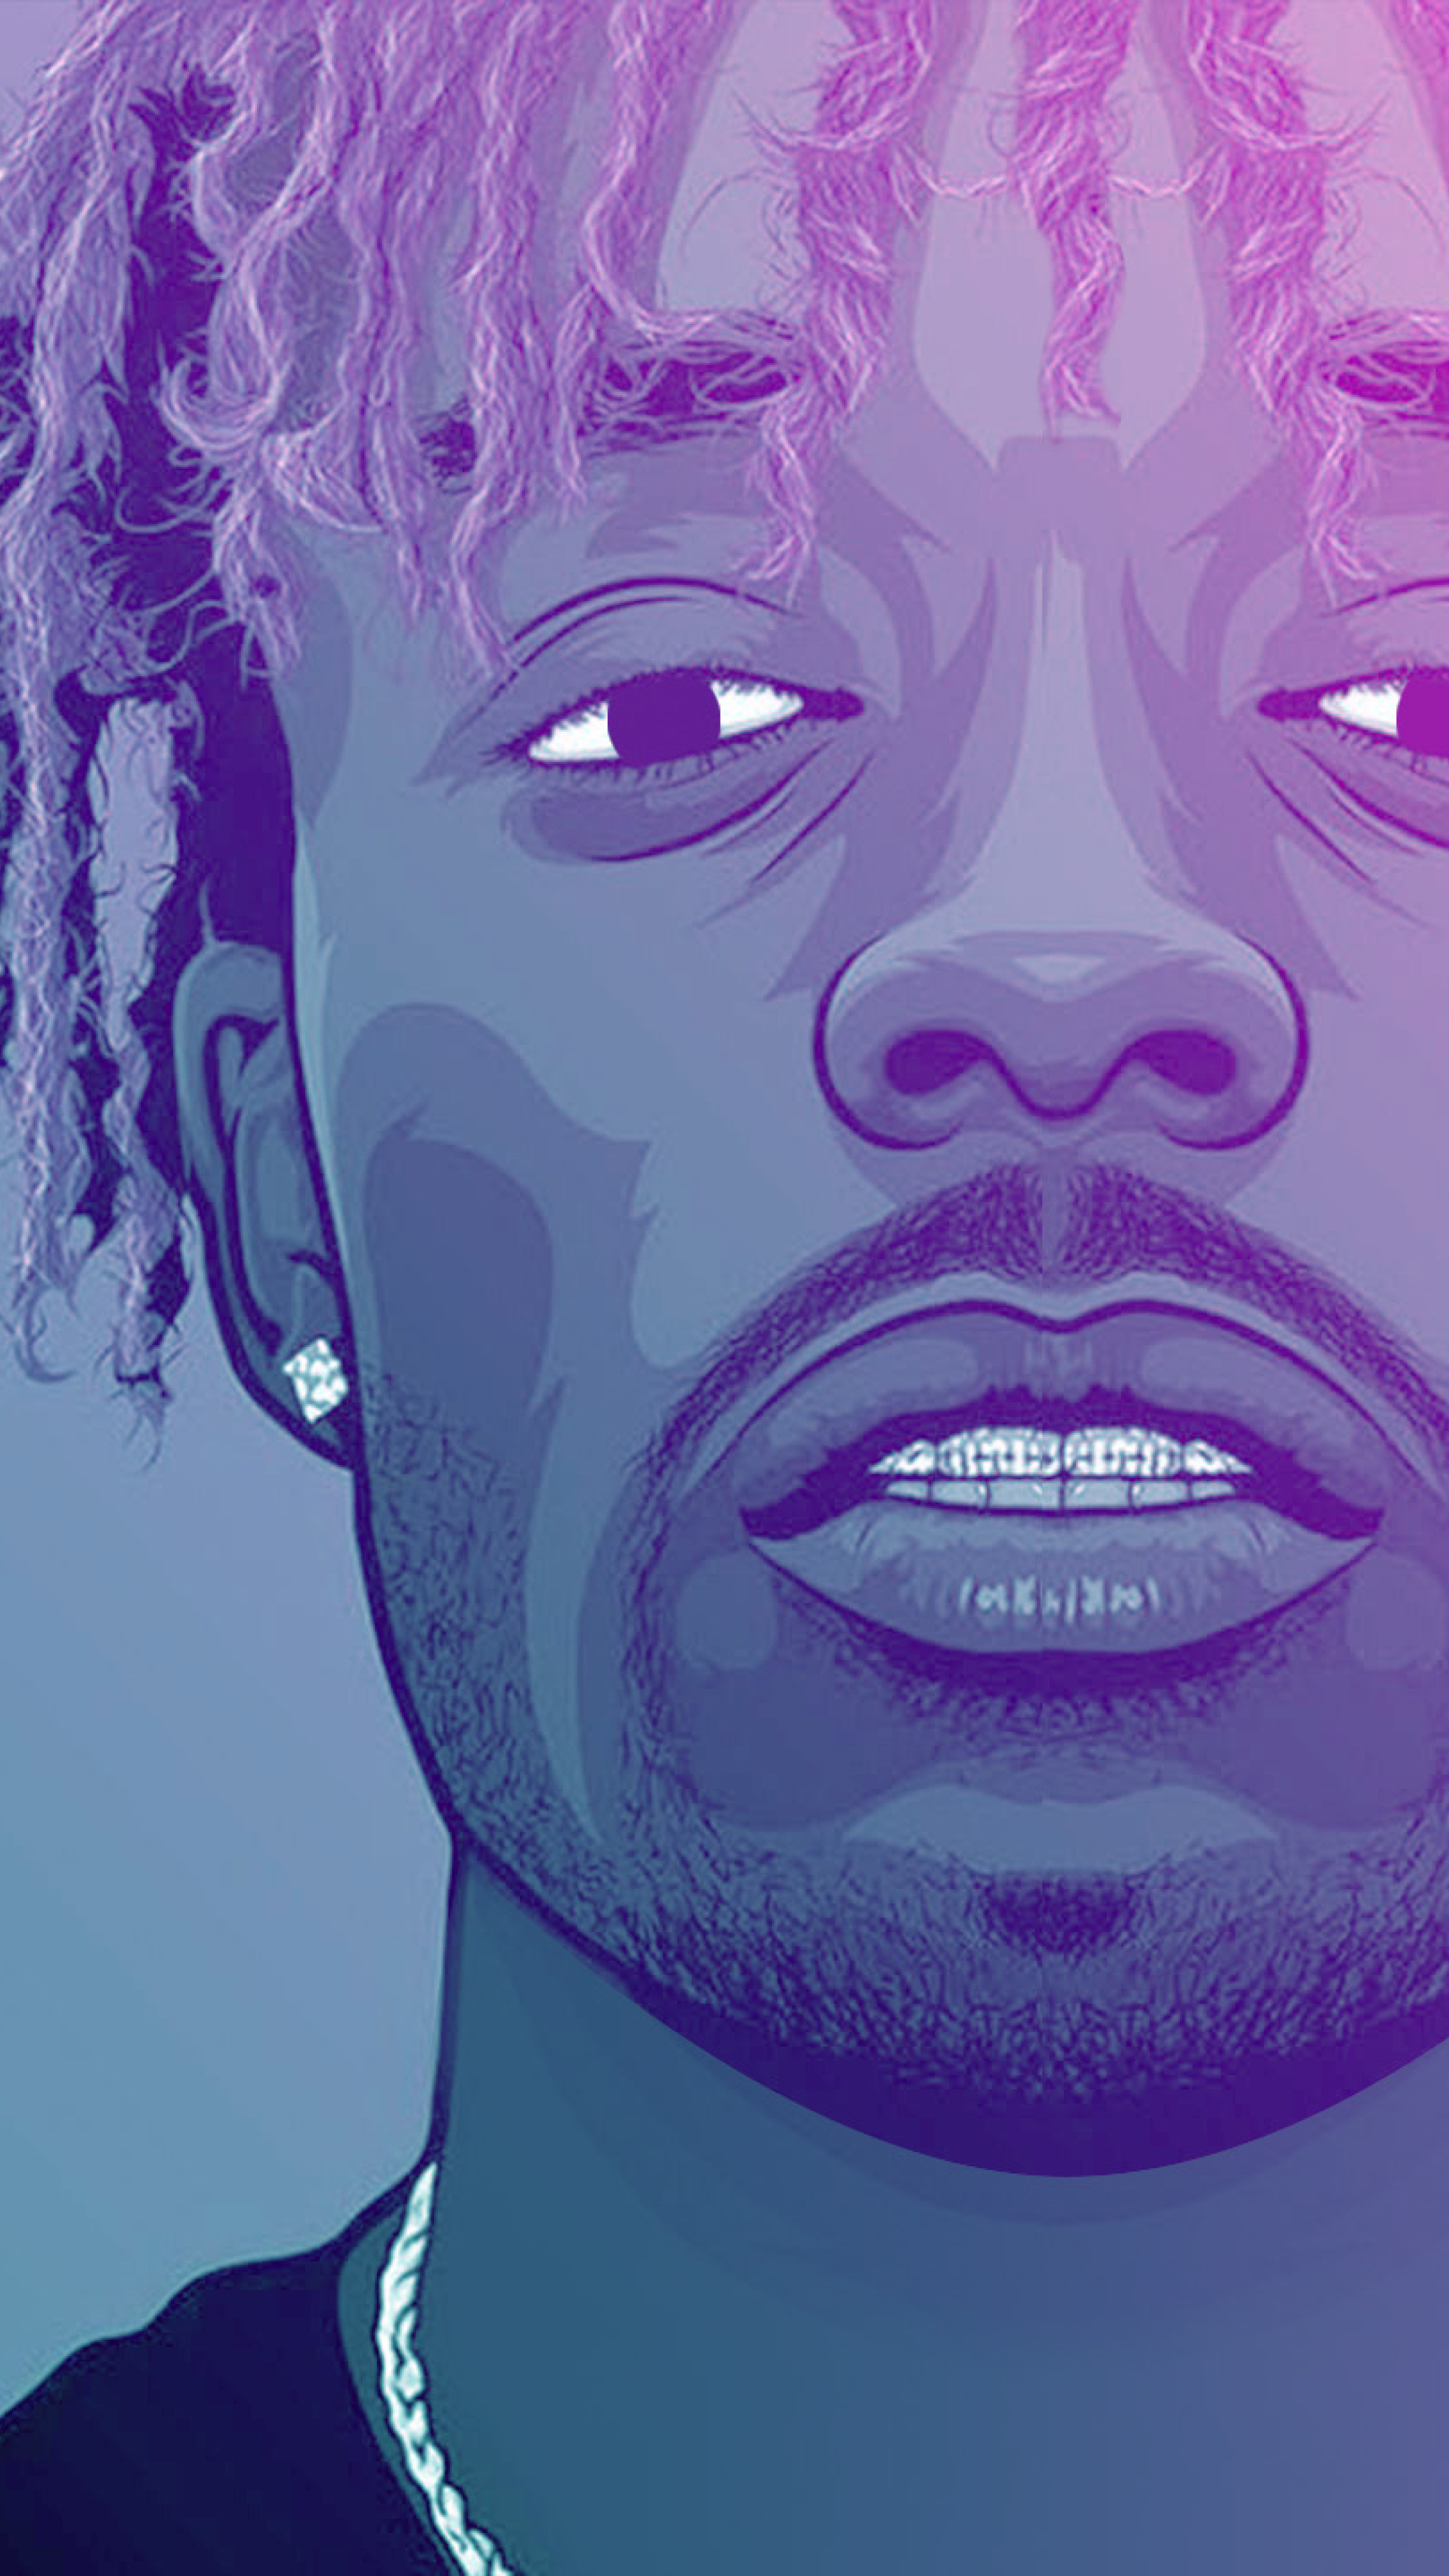 Lil Uzi Vert 2018 Wallpapers 68 Background Pictures